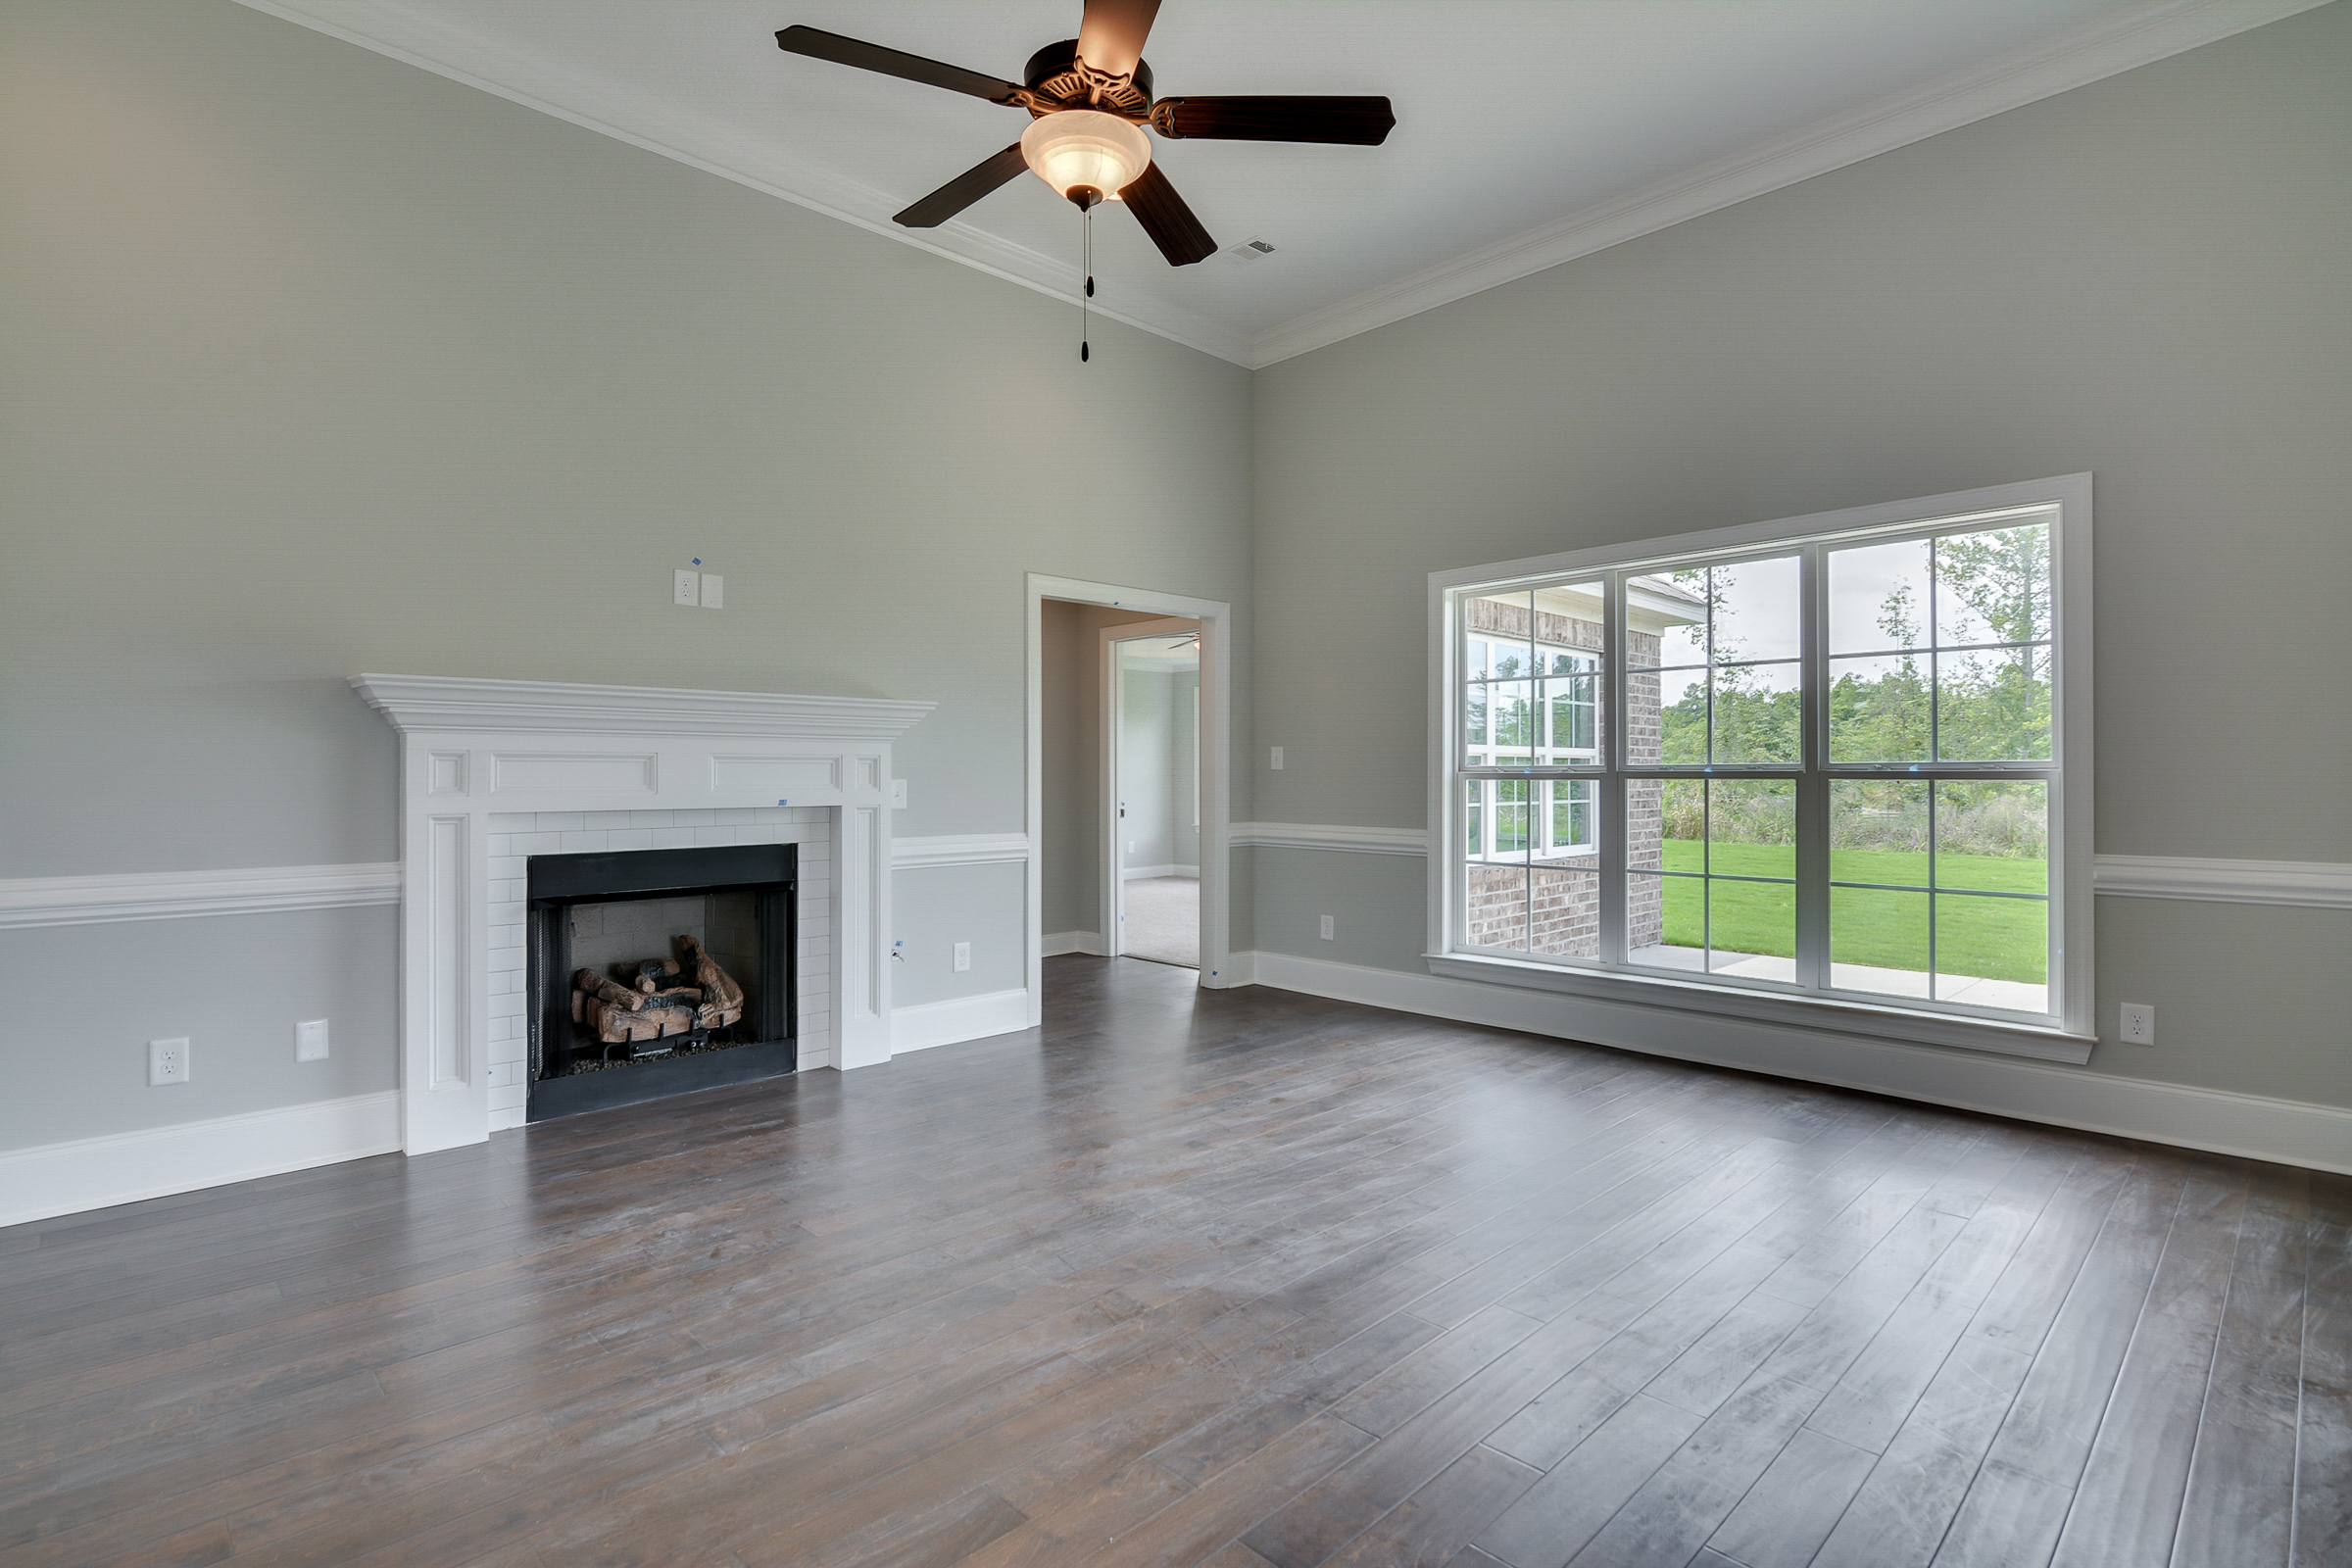 An image of a living room with a fireplace in Kelarie.